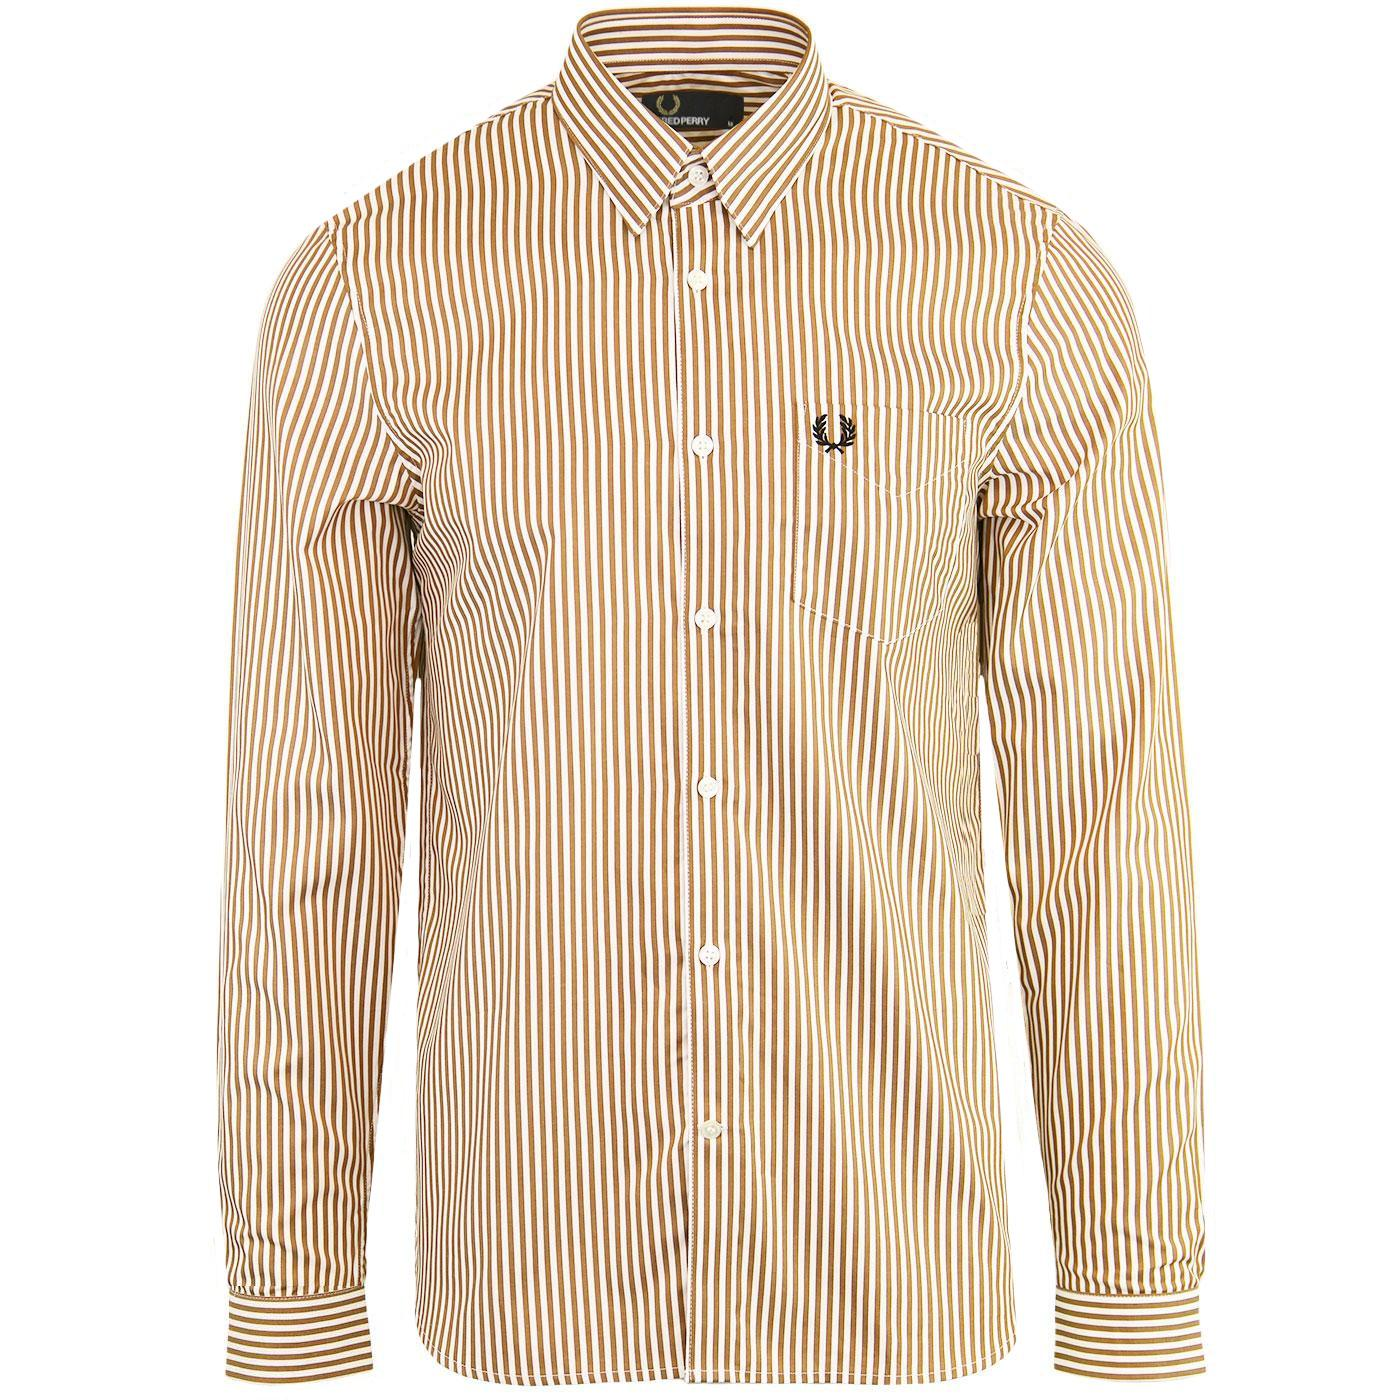 FRED PERRY Men's Retro Candy Stripe Twill Shirt C